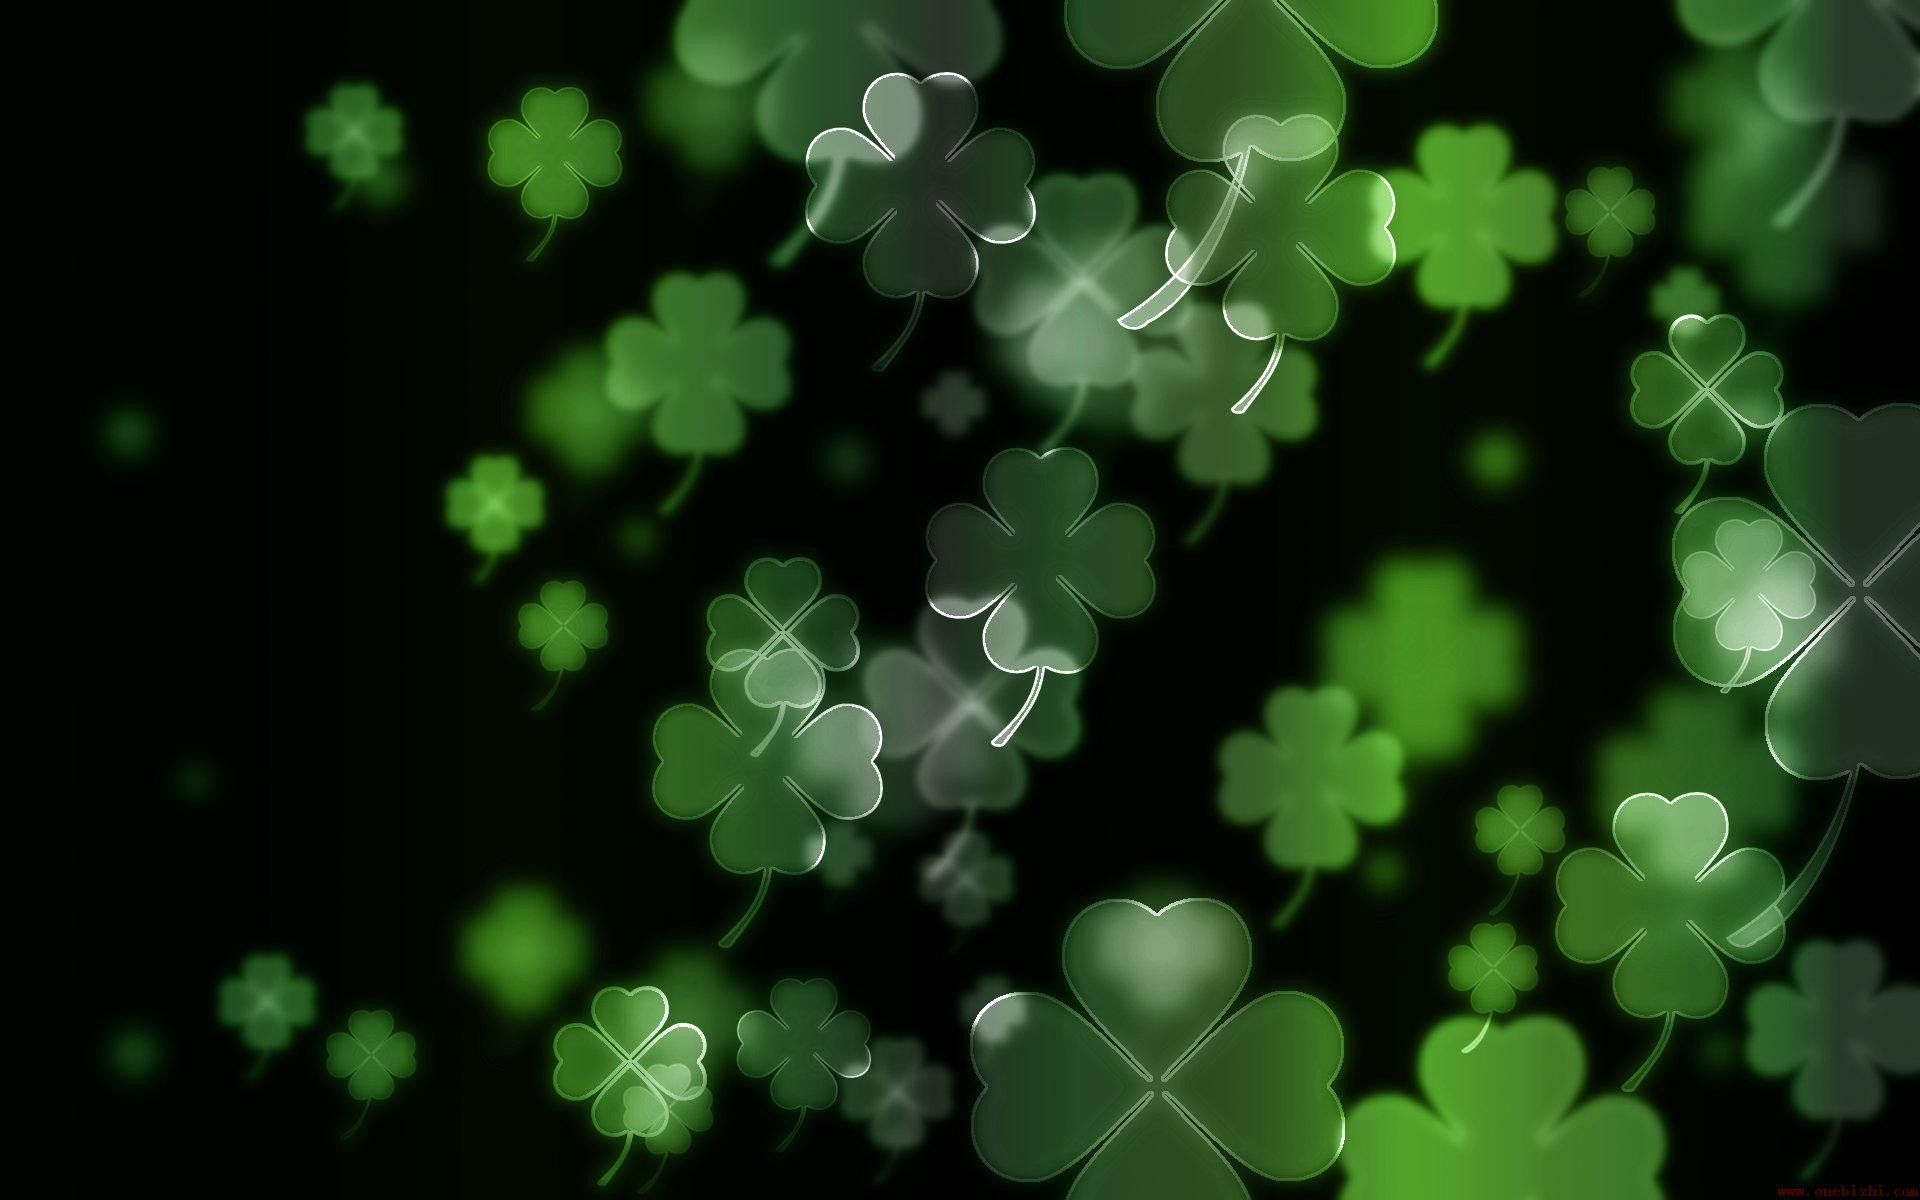 Luck irish four leaf clover Clovers wallpaper 1920x1200 1920x1200